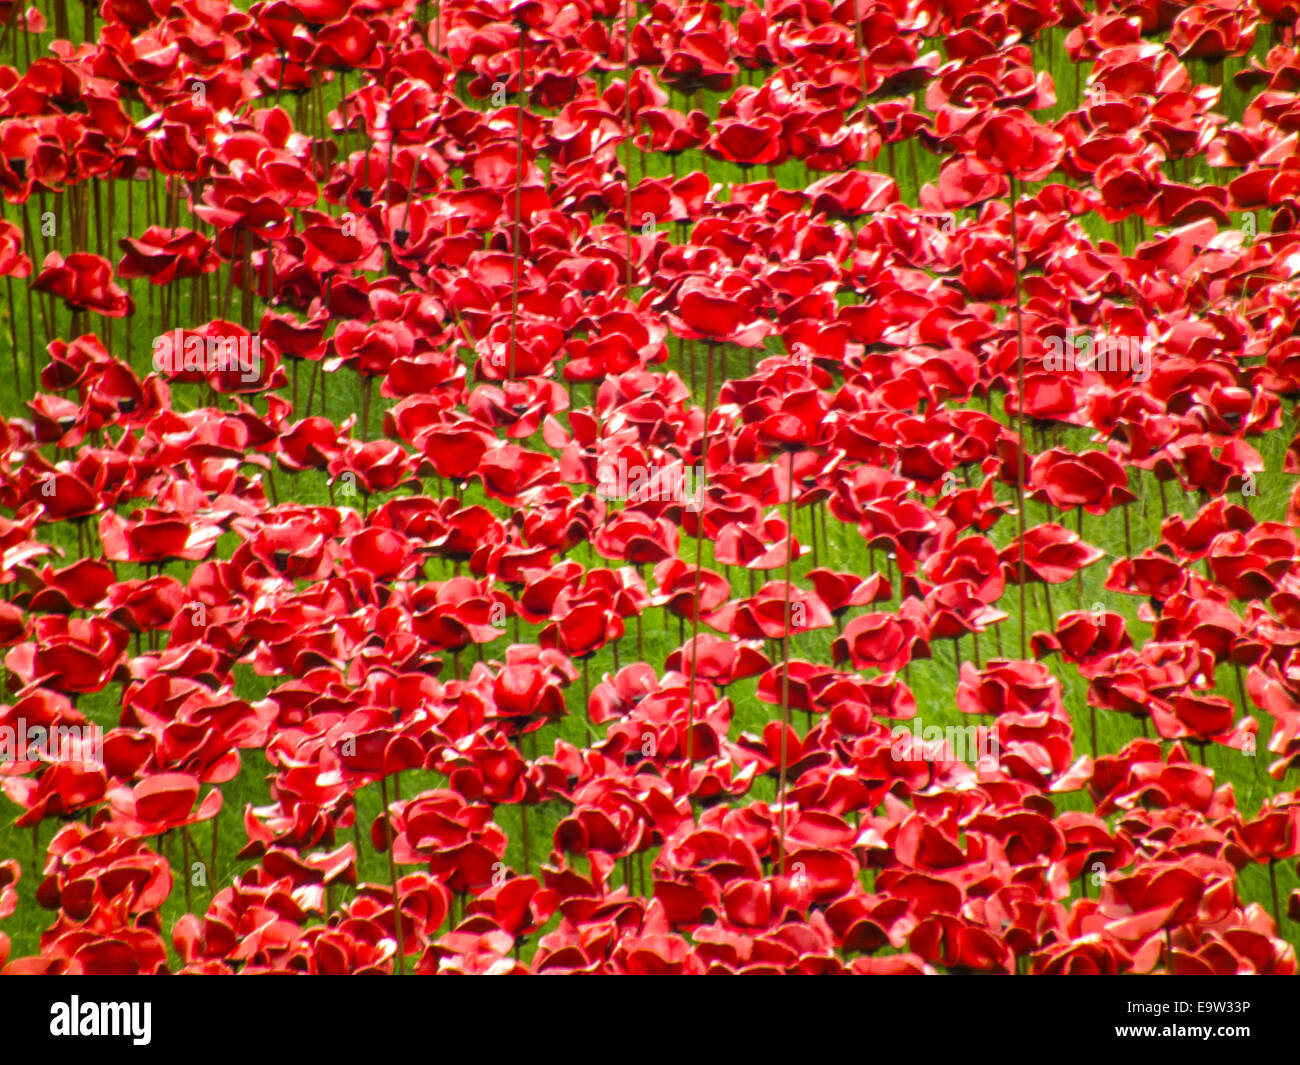 Blood swept lands and seas of red. The poppies at the Tower of London. Very poignant  reminder of our 1st world Stock Photo